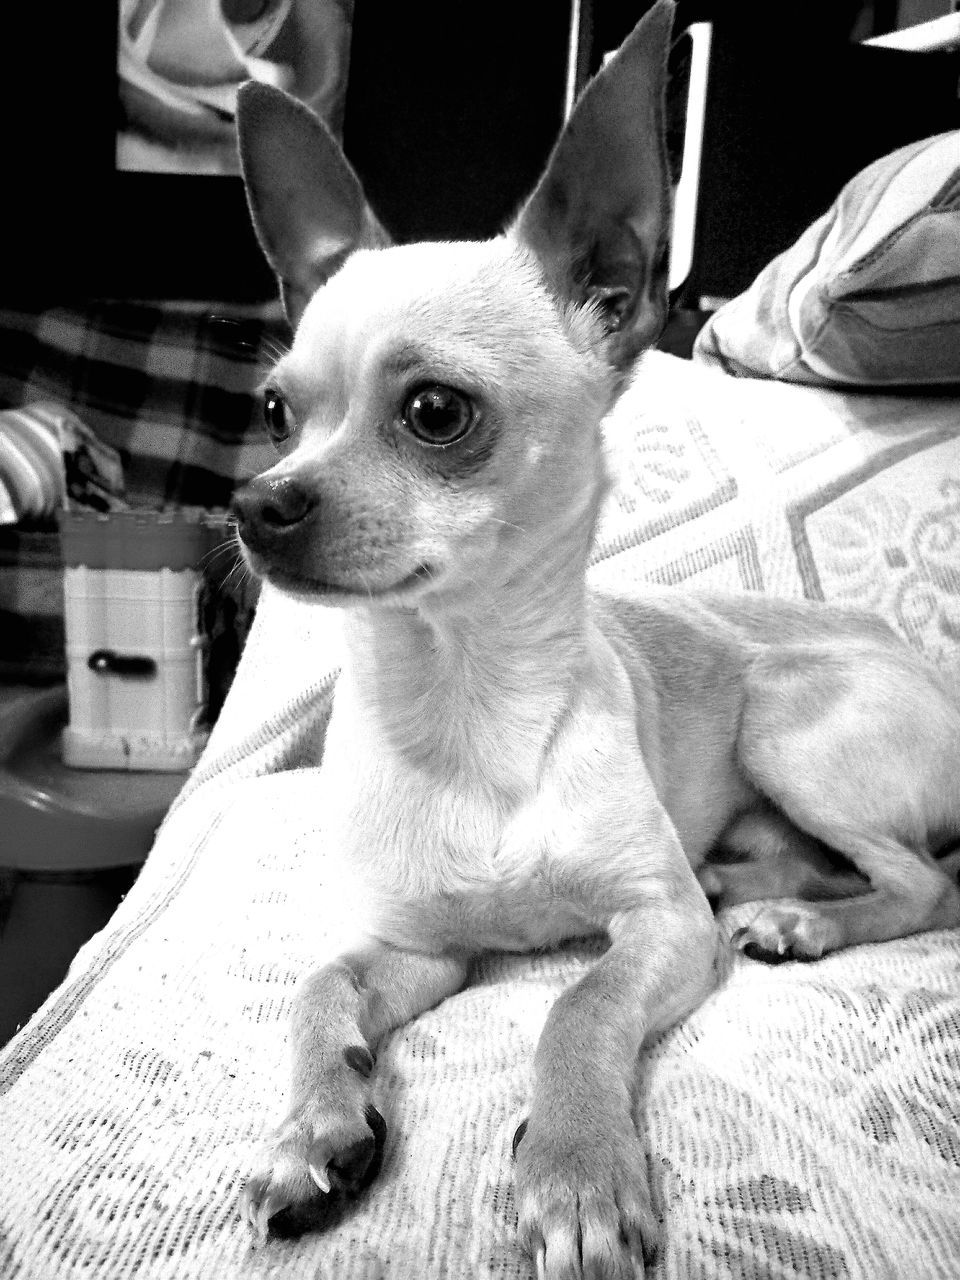 pets, domestic animals, dog, animal themes, mammal, chihuahua, one animal, sitting, indoors, bed, close-up, no people, day